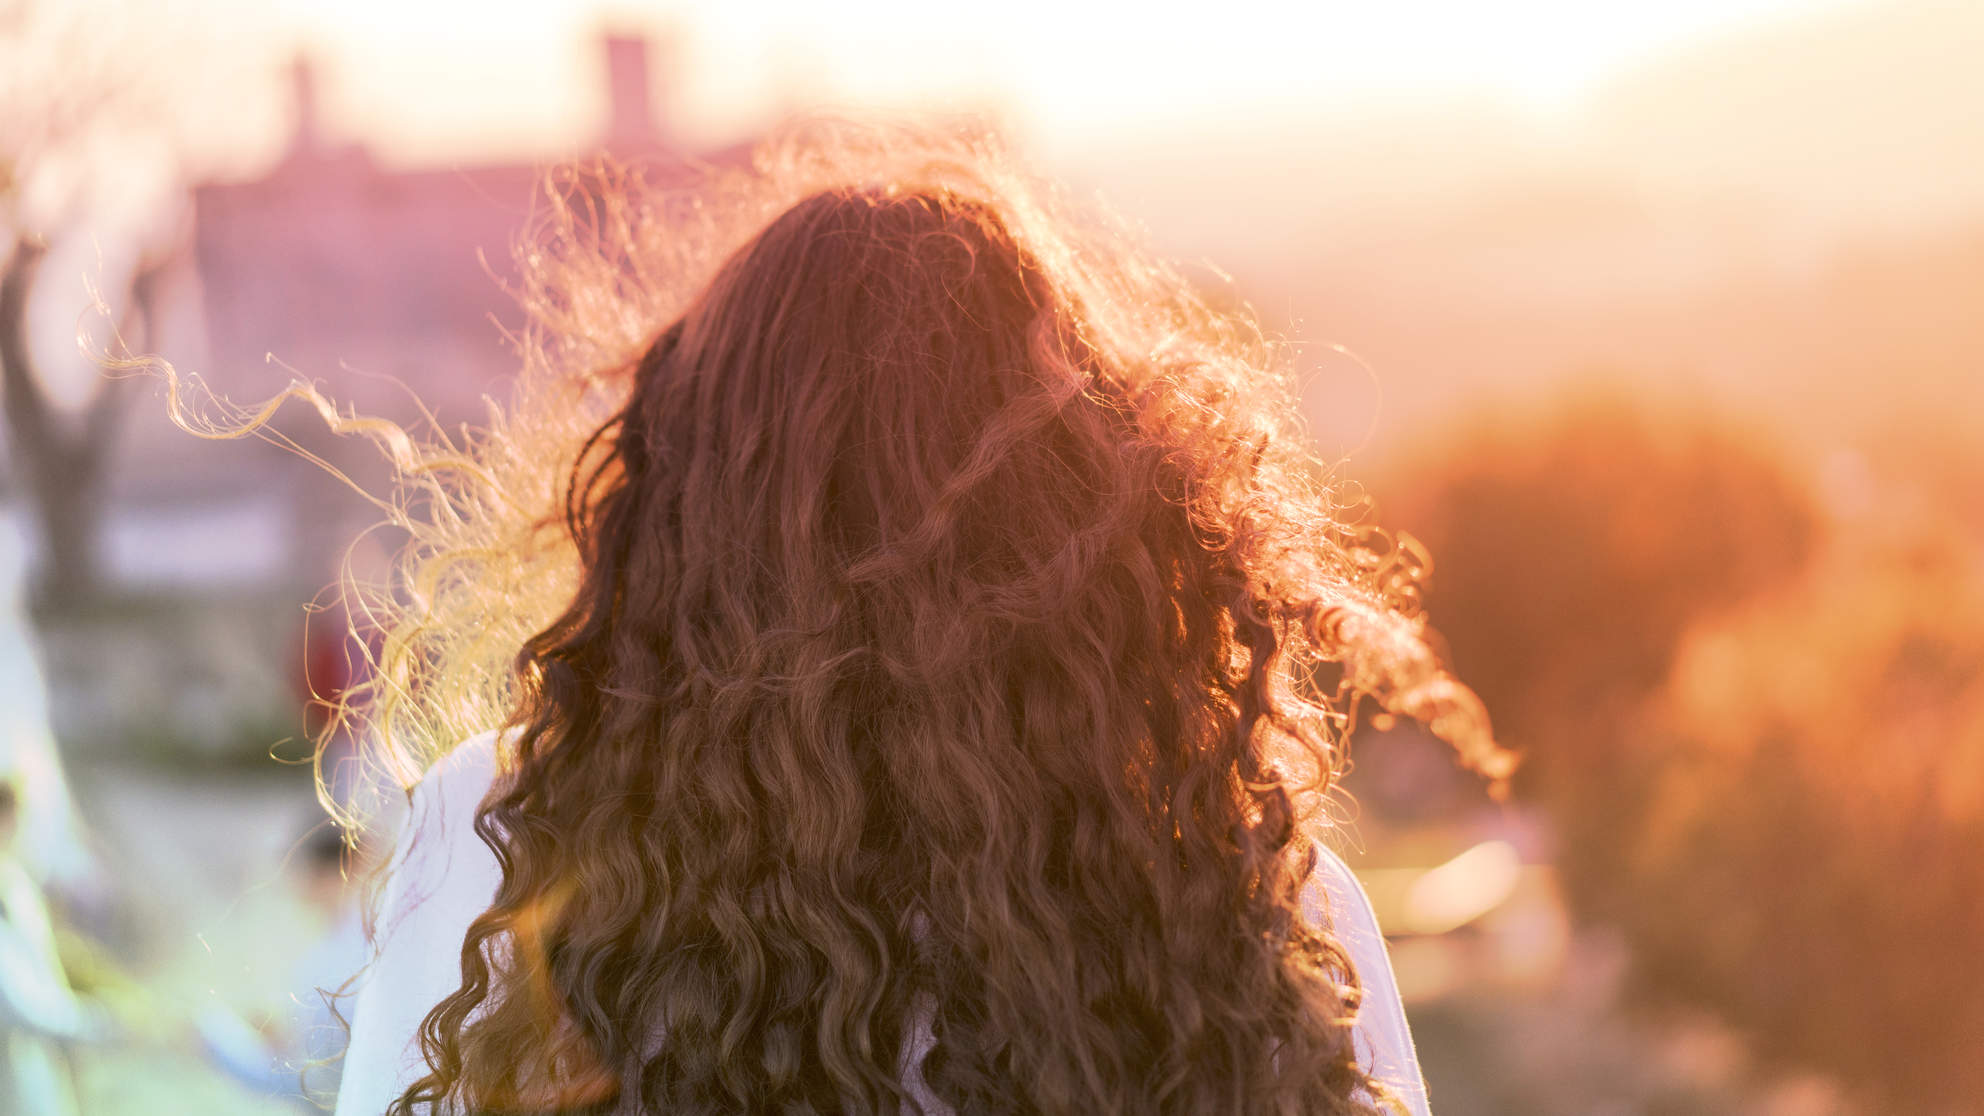 I Tried 10 Curly Hair Products to Tame Frizz—and These Are the Only 2 I'd Buy Again